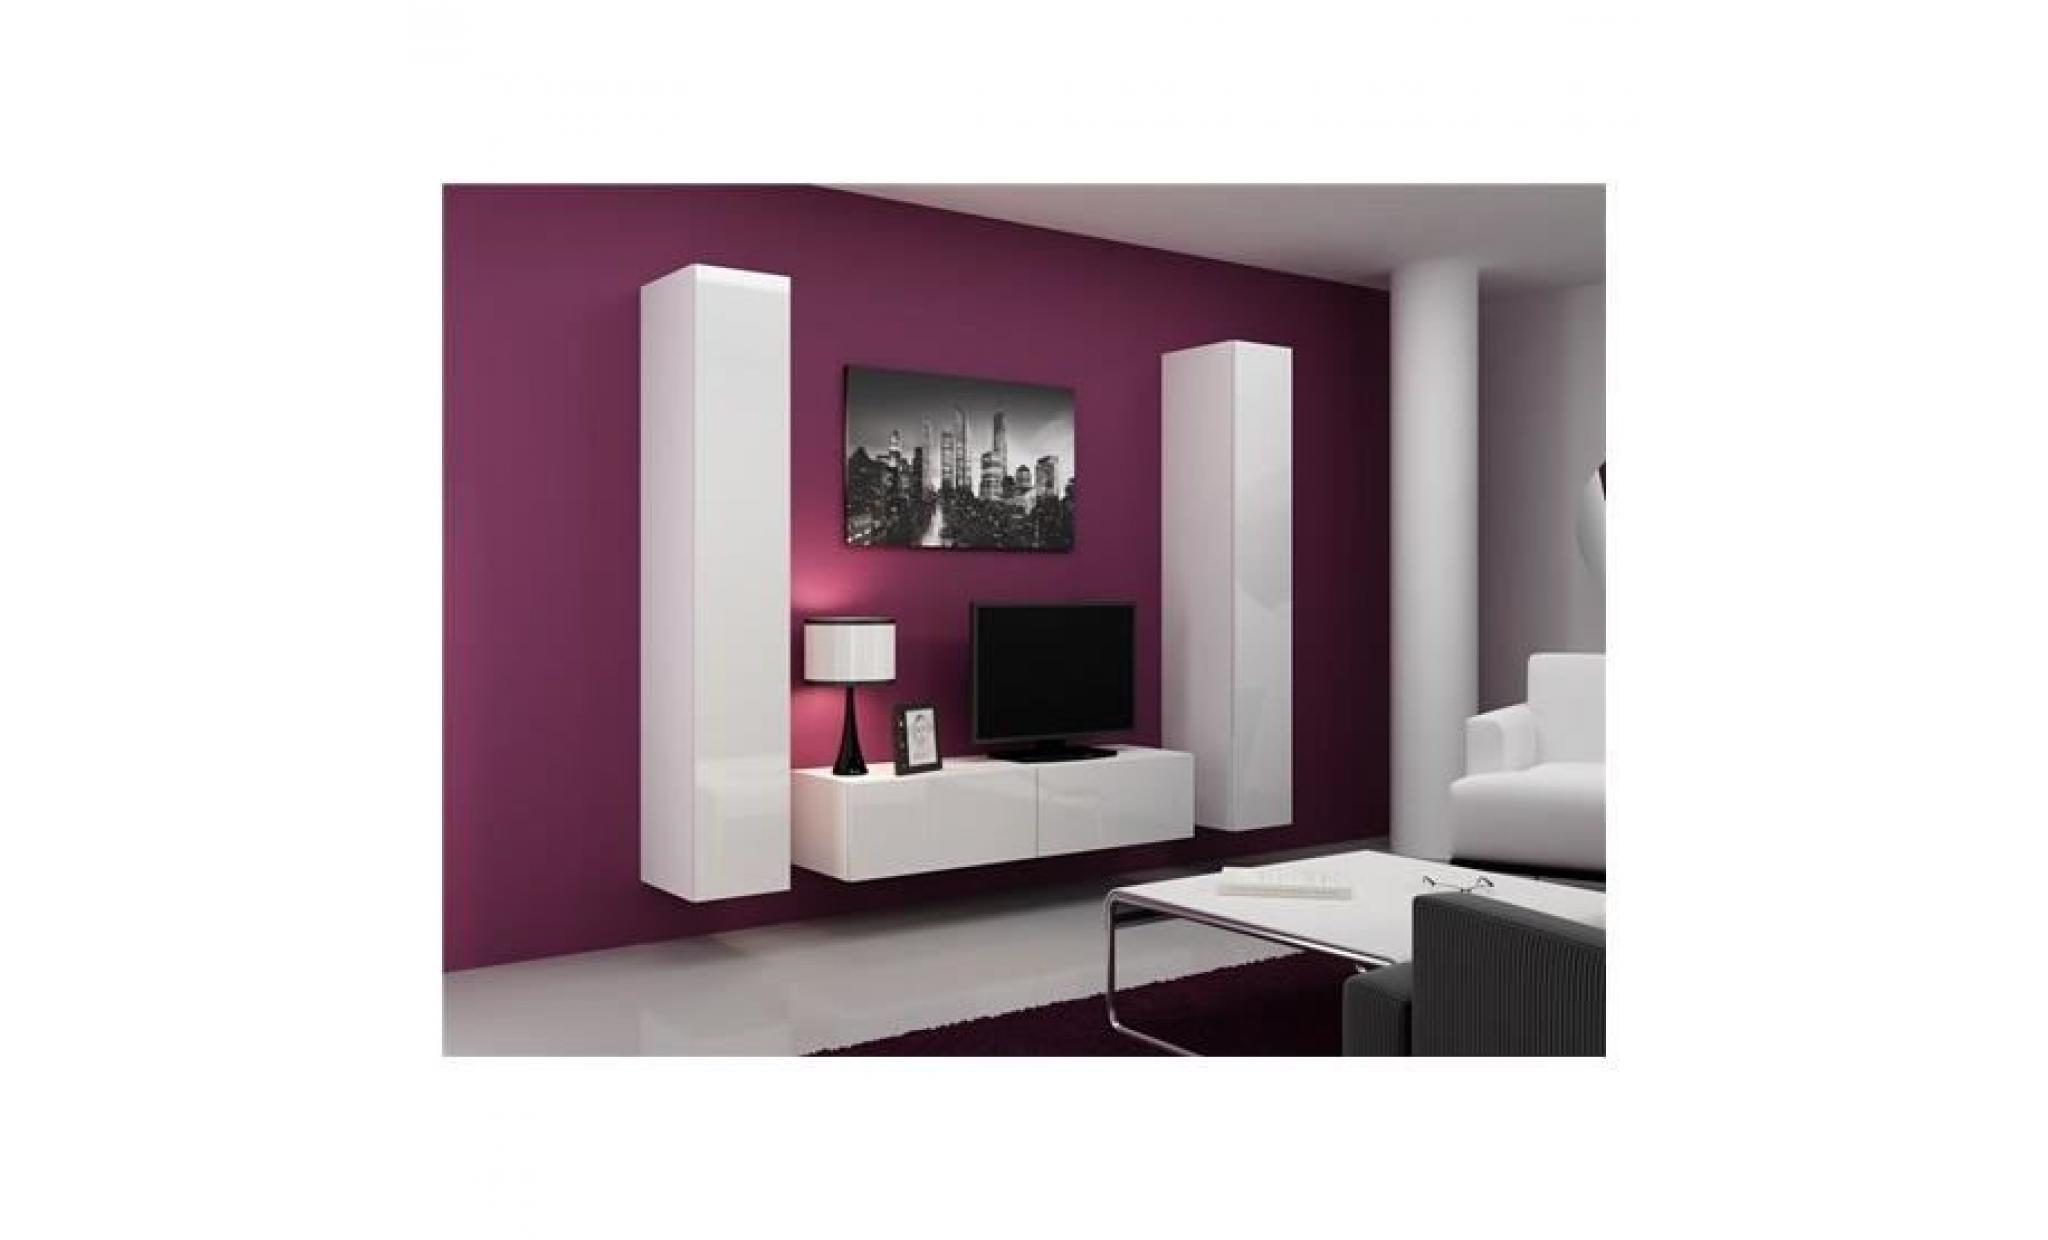 Meuble tv design suspendu vini blanc achat vente meuble for Meuble tv suspendu blanc